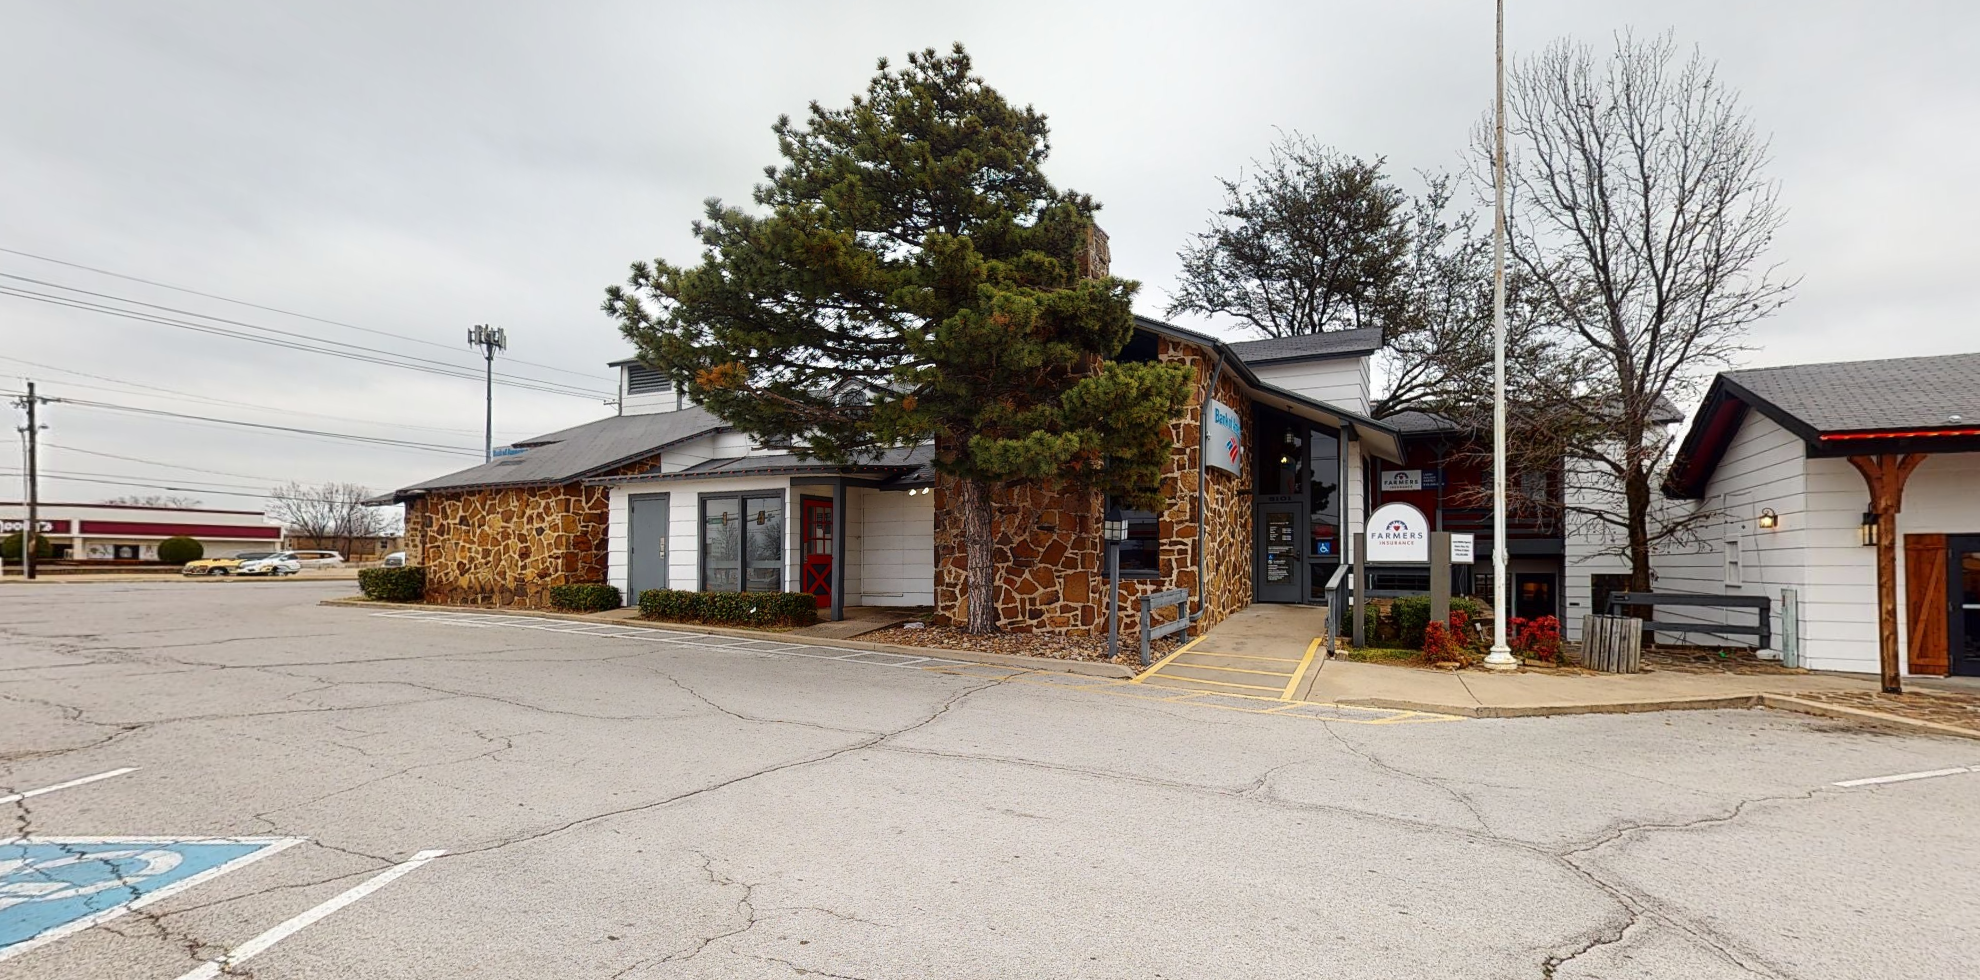 Bank of America financial center with drive-thru ATM and teller | 5101 S Sheridan Rd, Tulsa, OK 74145